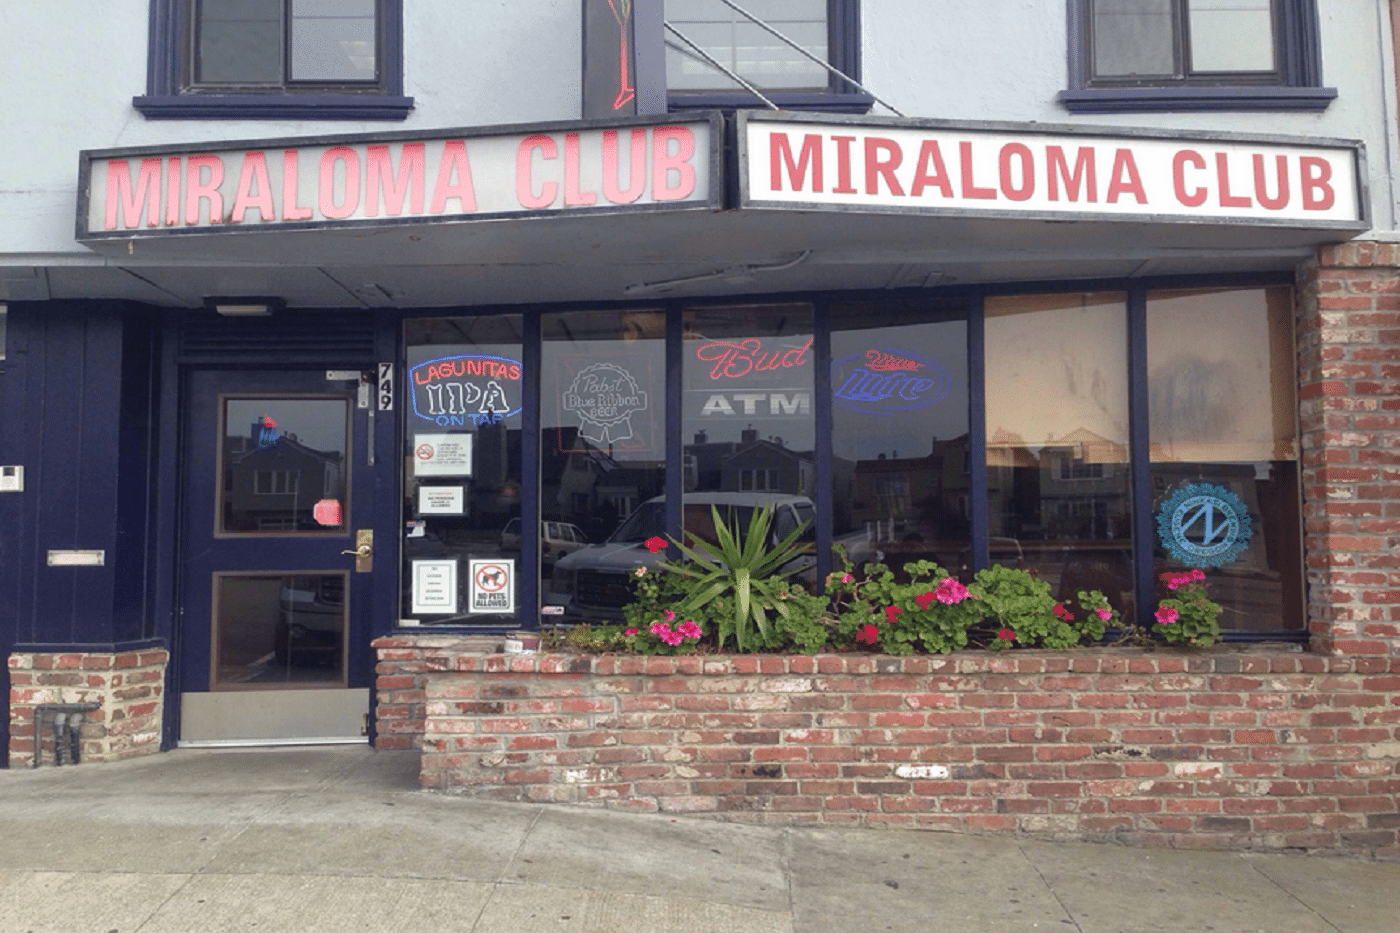 Miraloma Club, 749 Portola Dr, San Francisco, CA 94127 was cited for refilling Liquor Bottles